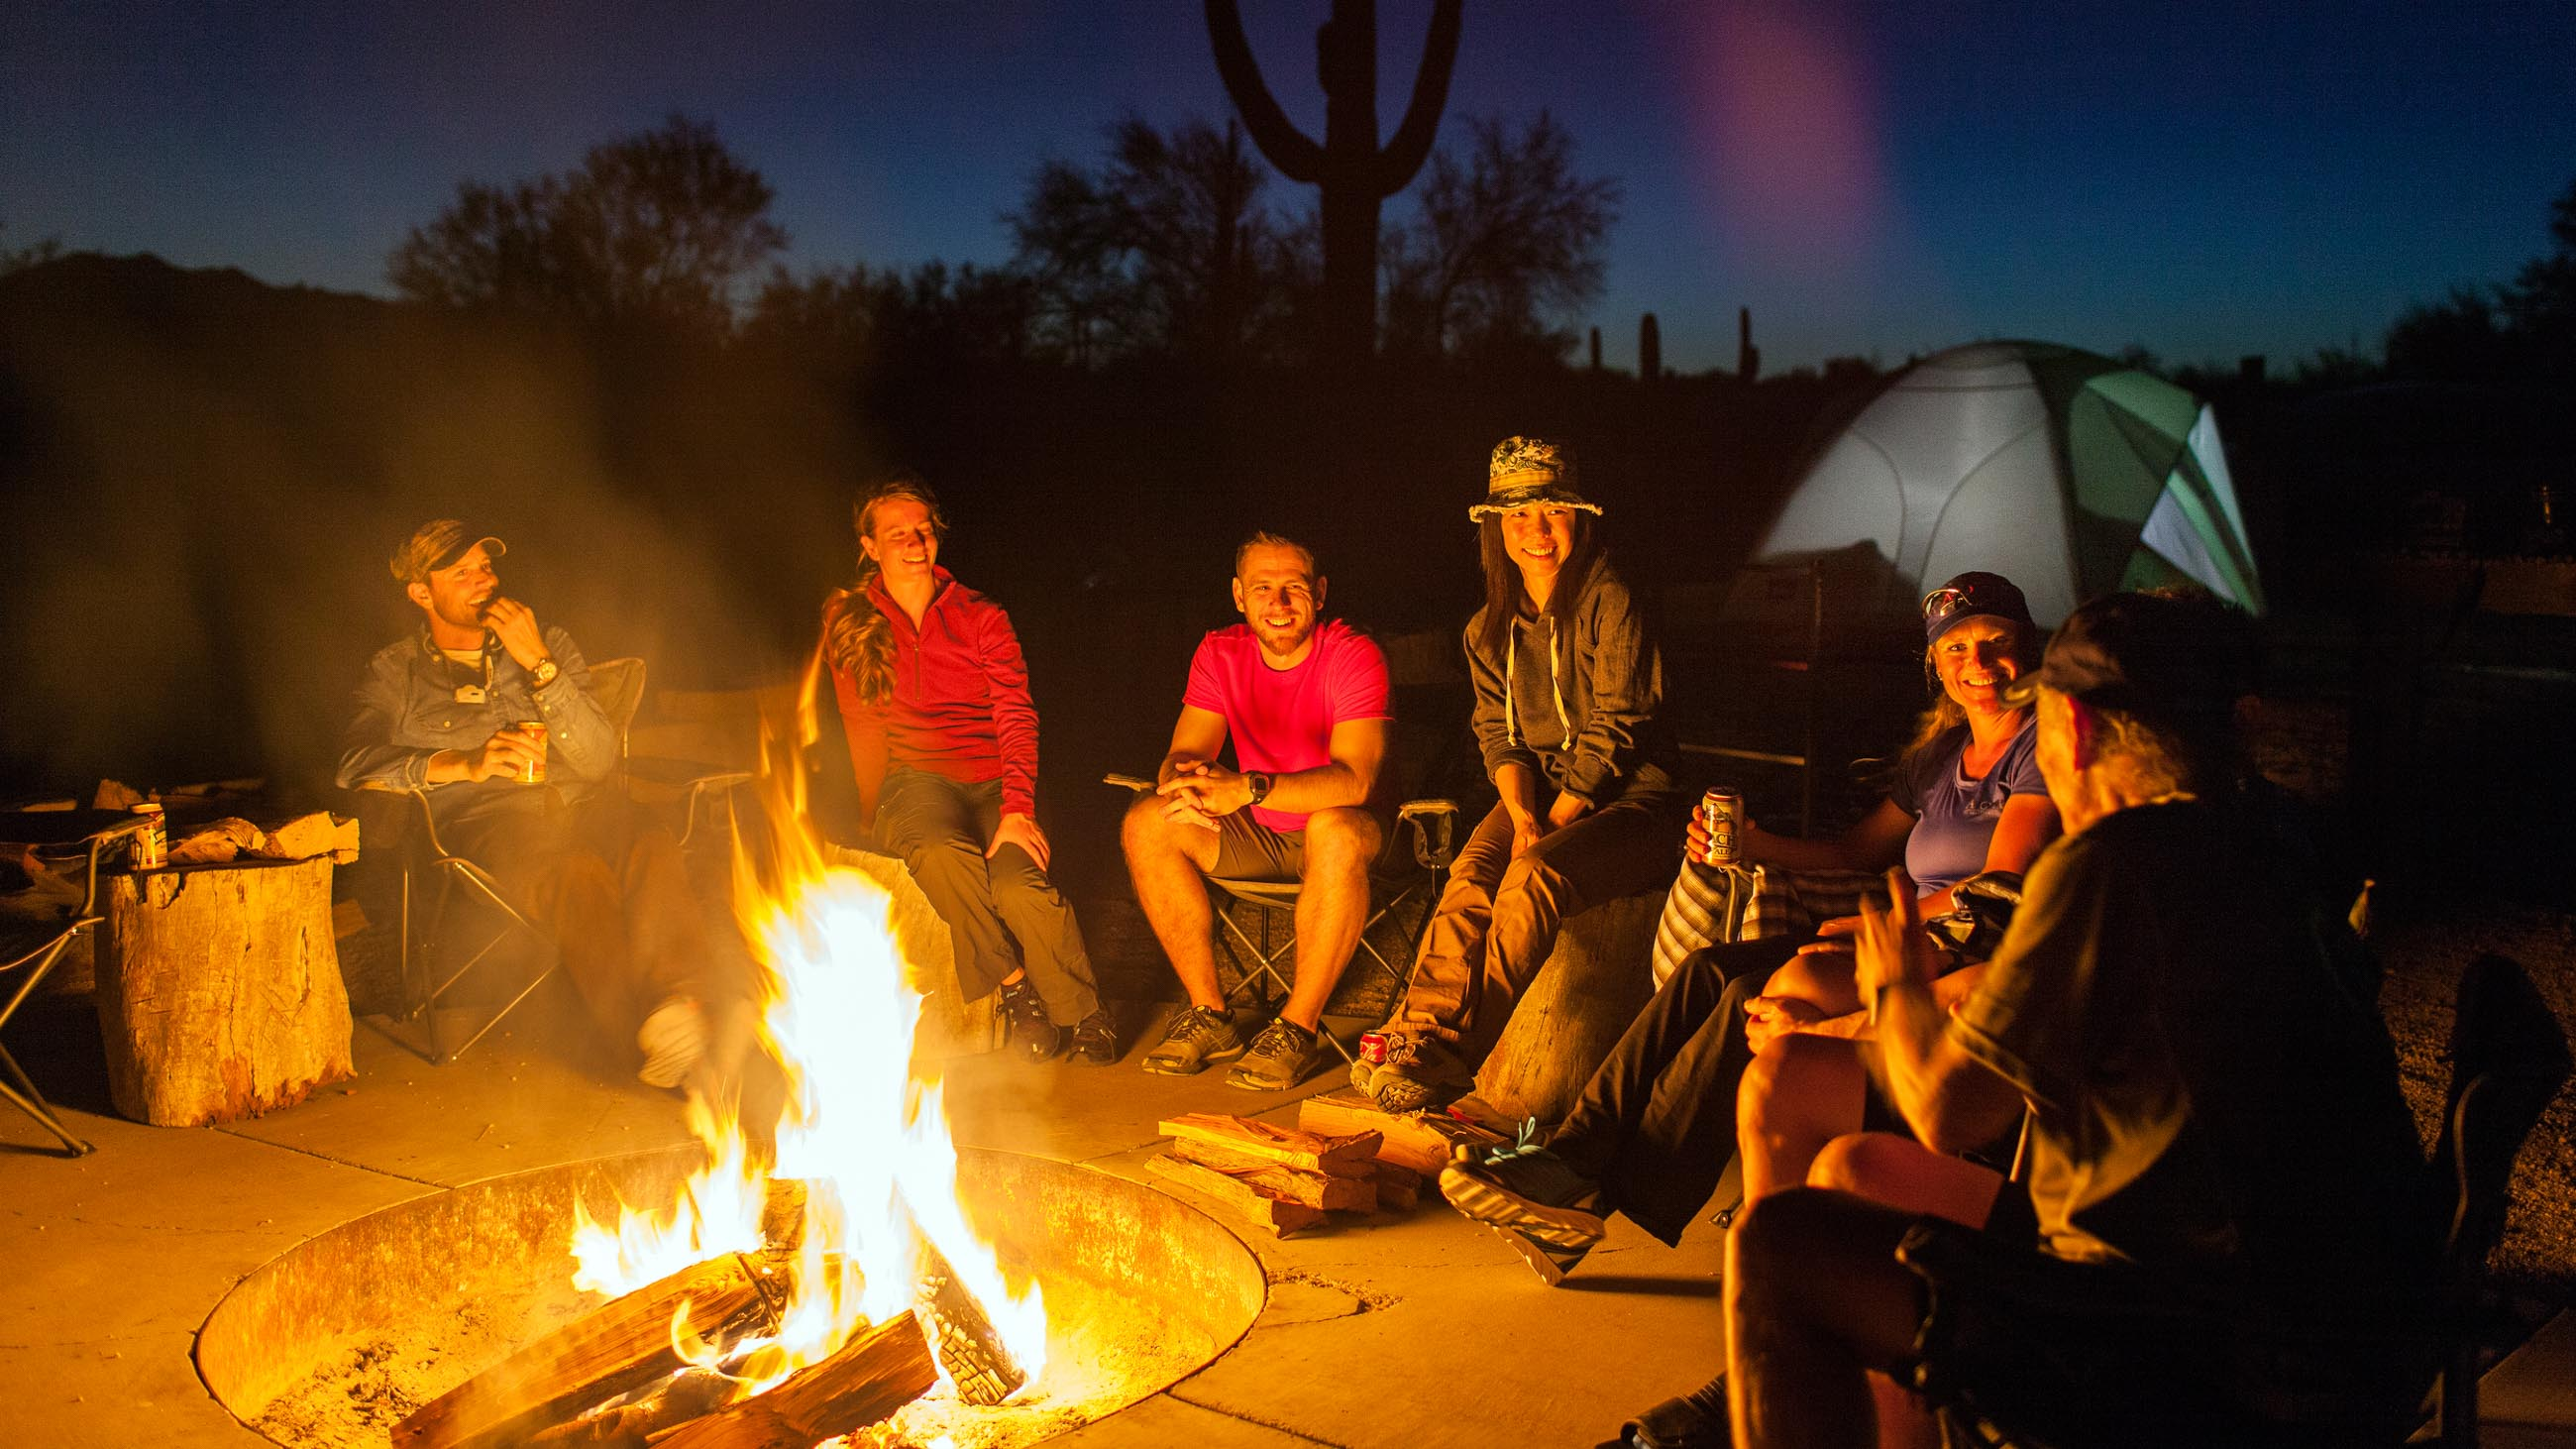 Smiling group sits by campfire on Arizona tour